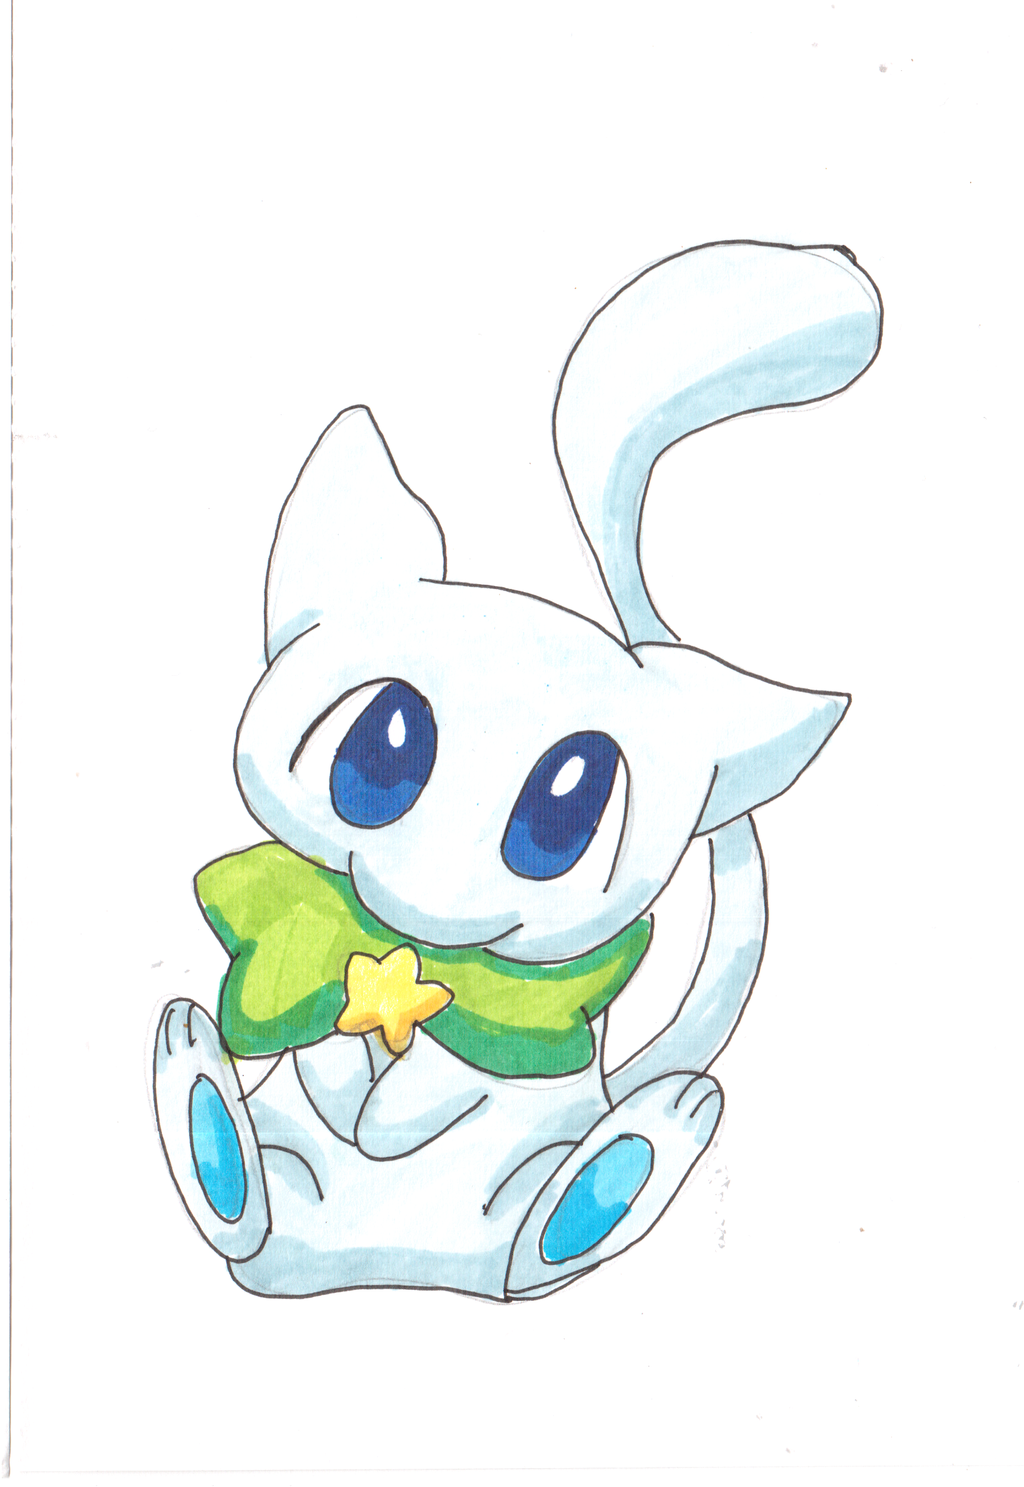 Shiny Mew by 1Pikapi1 on DeviantArt